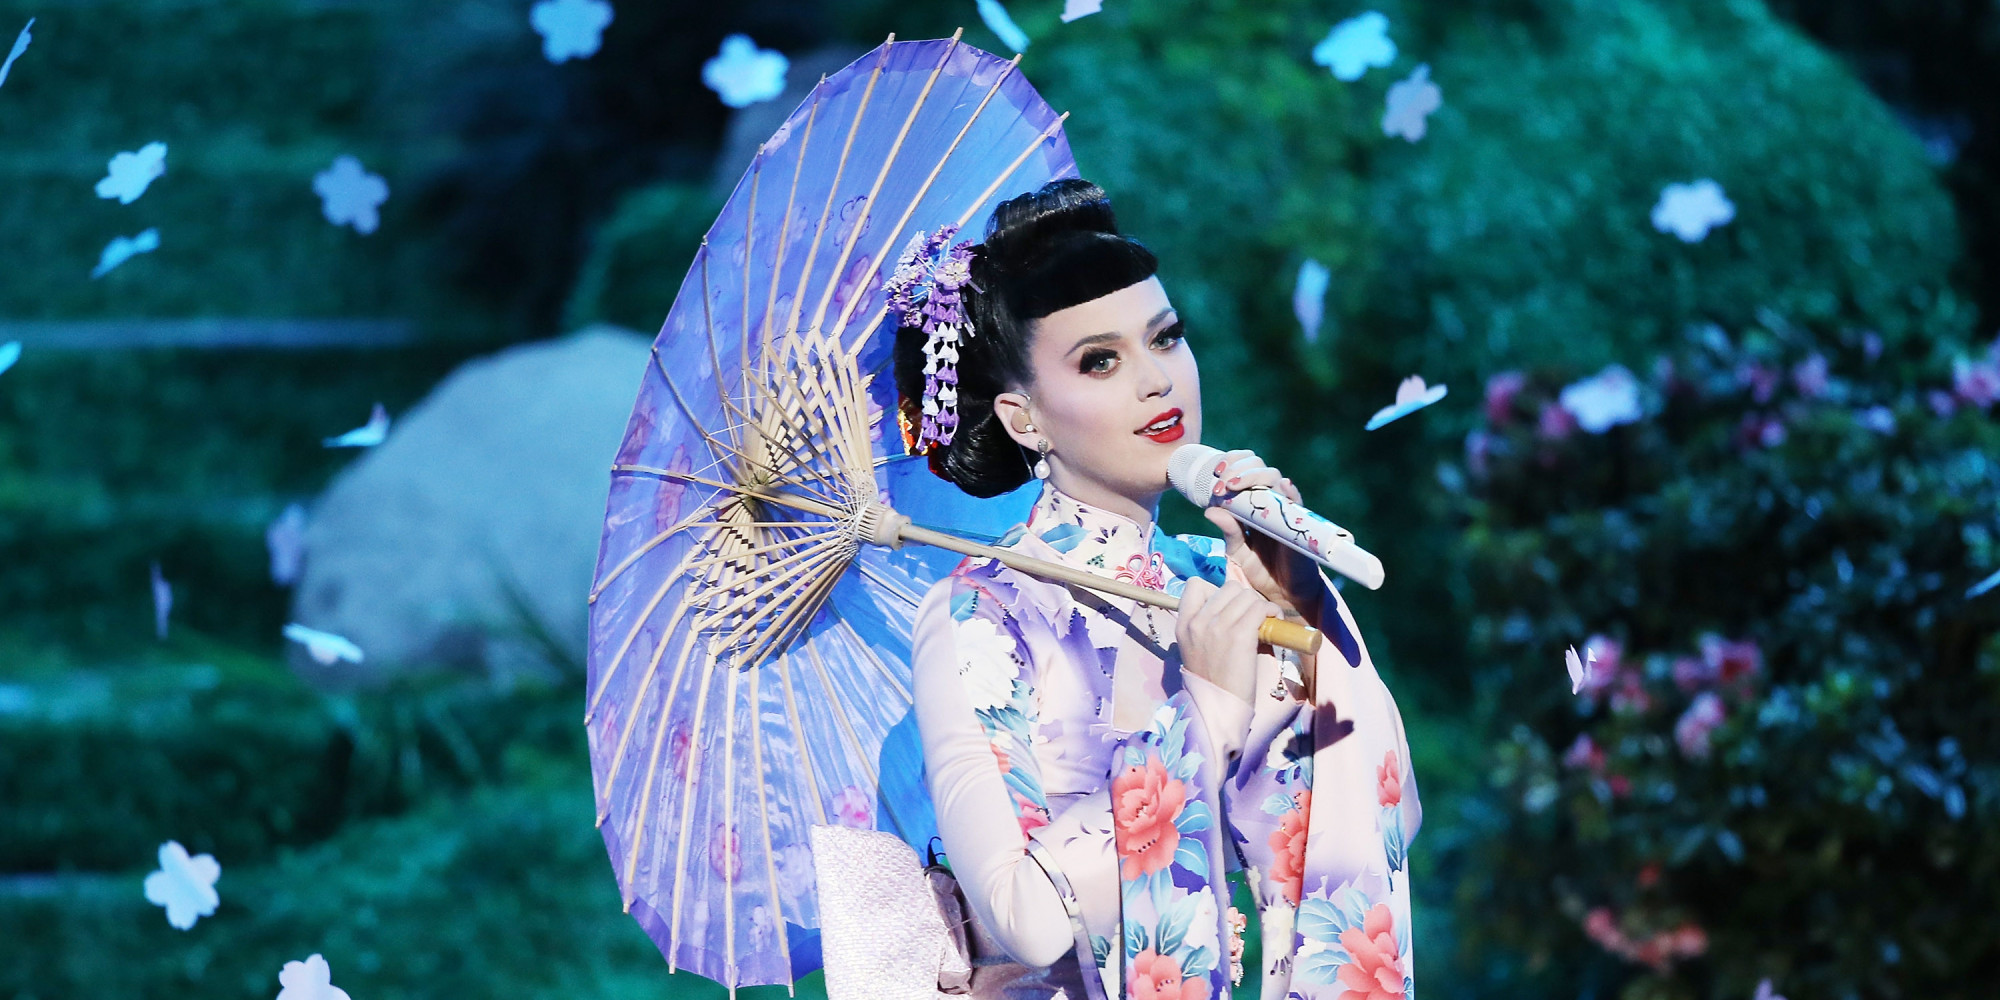 Download this Katy Perry Facebook picture